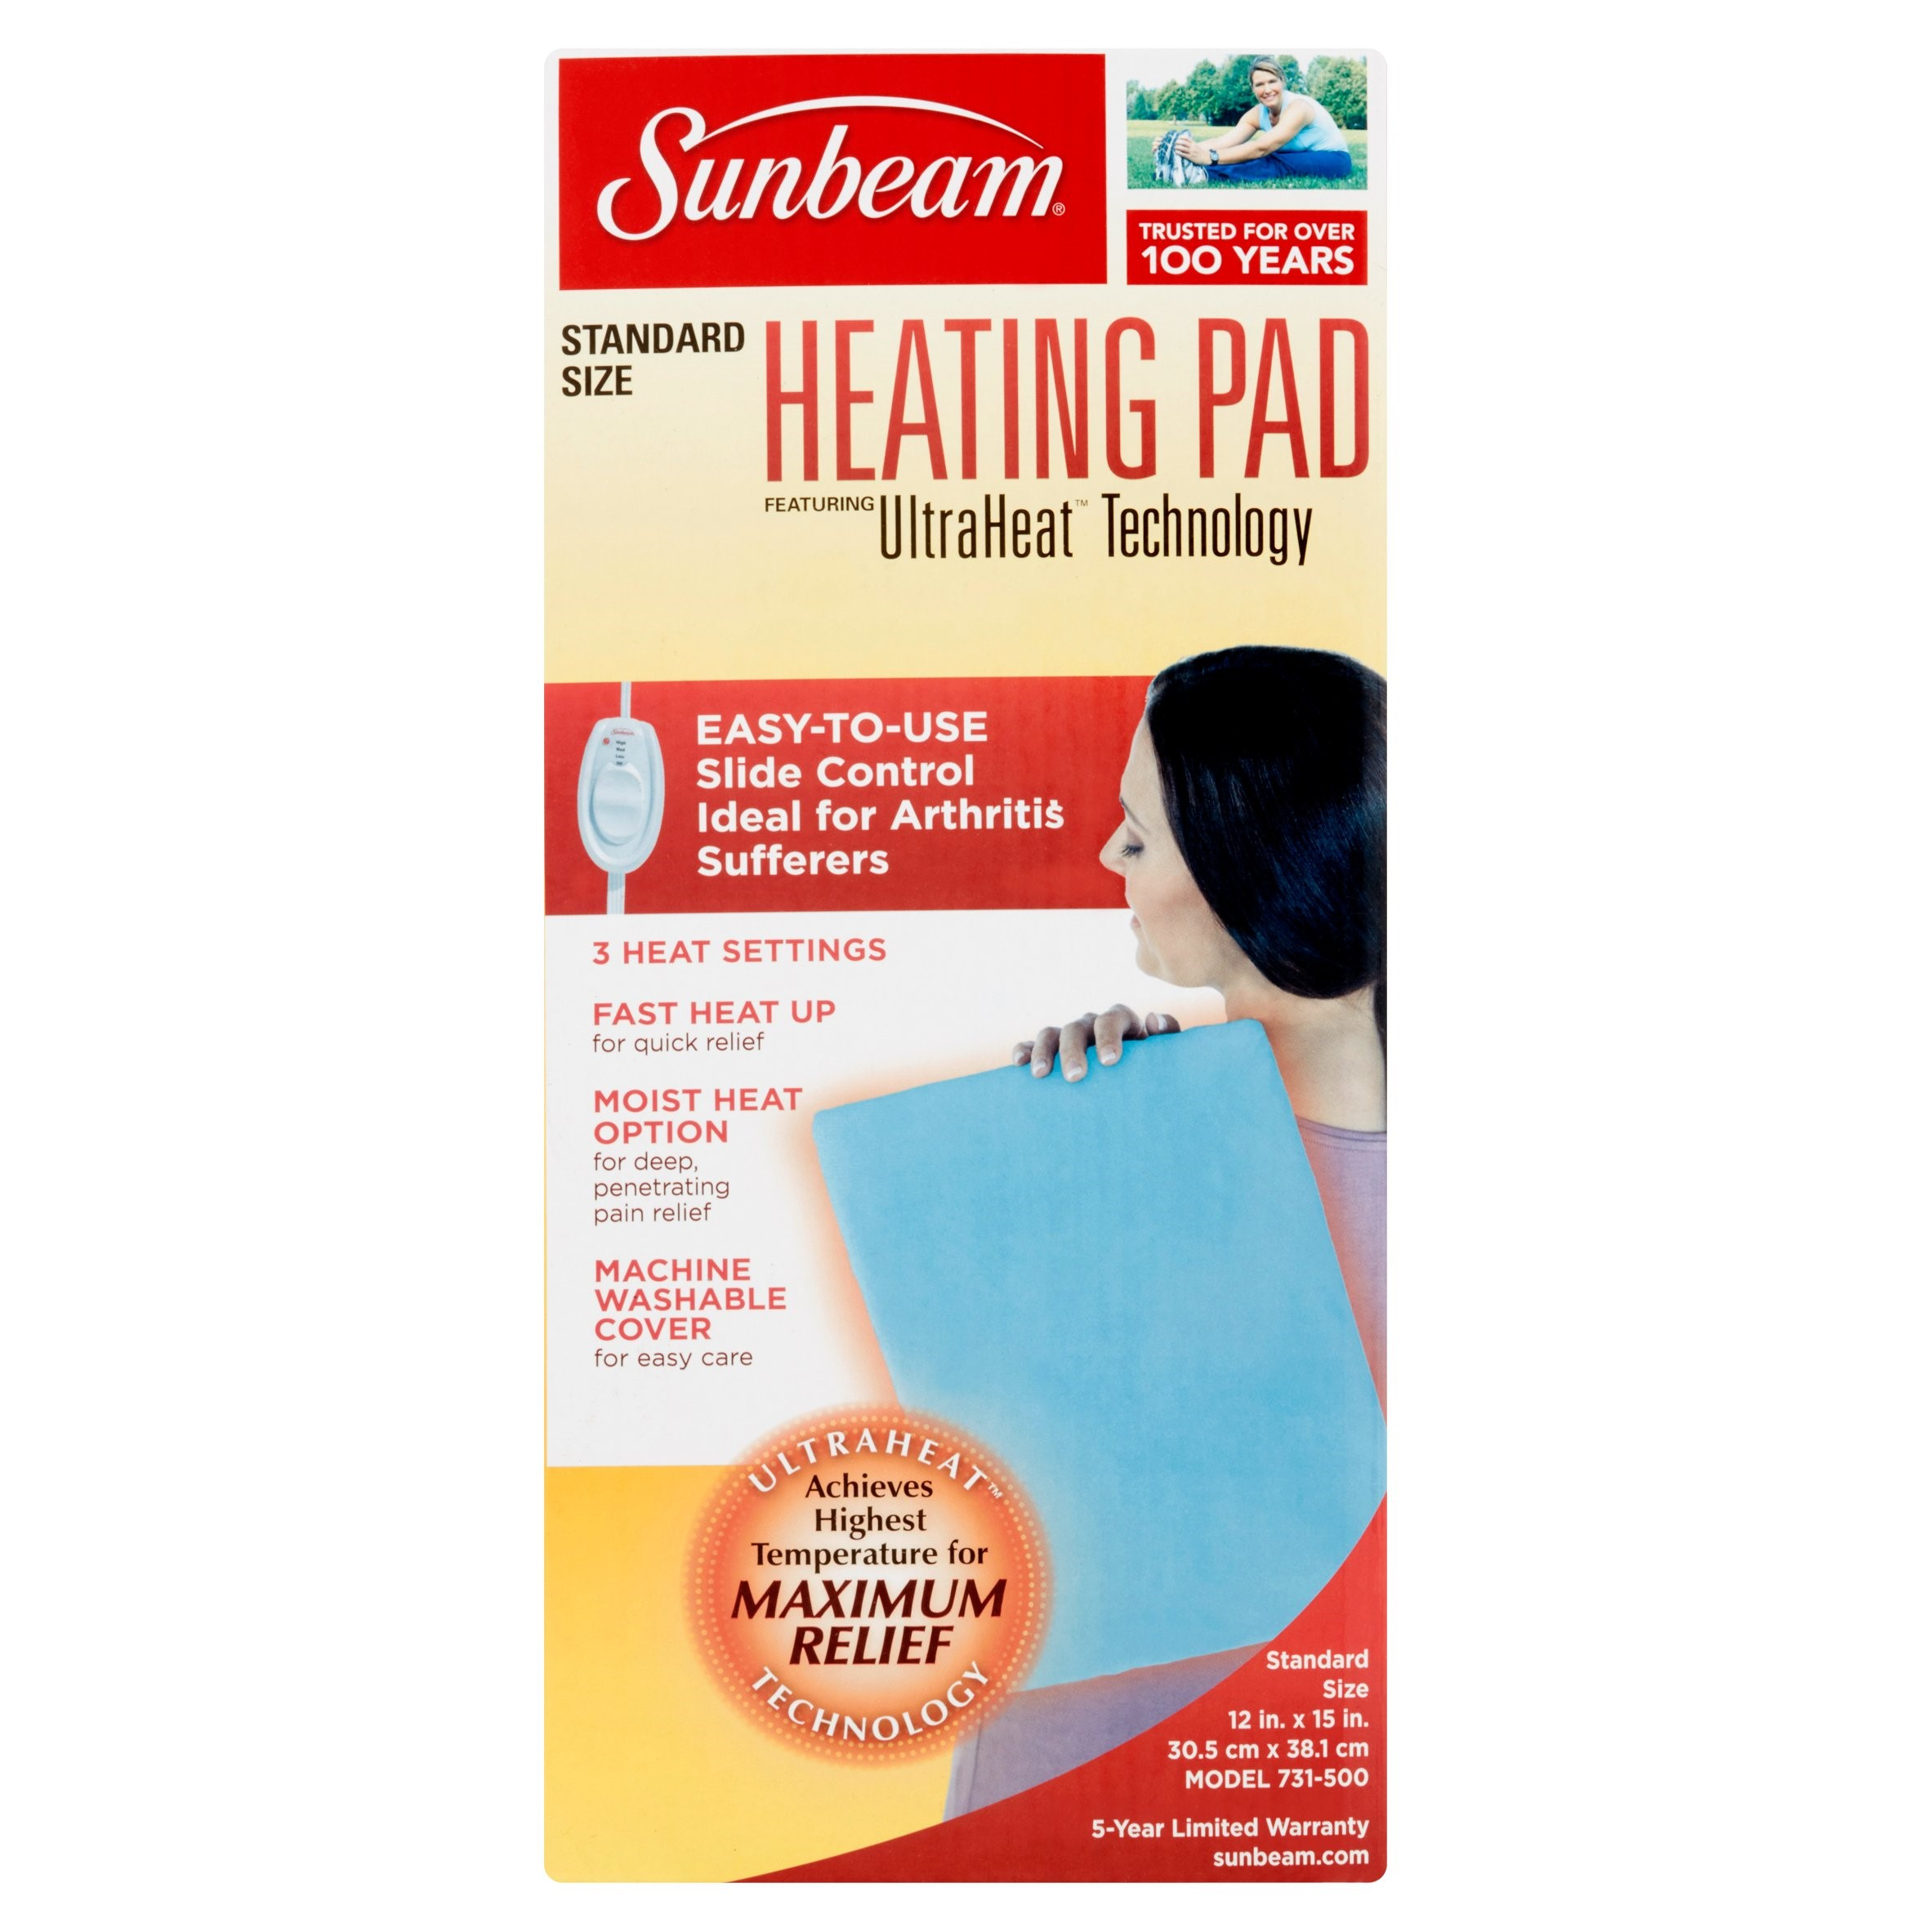 Sunbeam Moist/Dry Heating Pad, Model 731-5